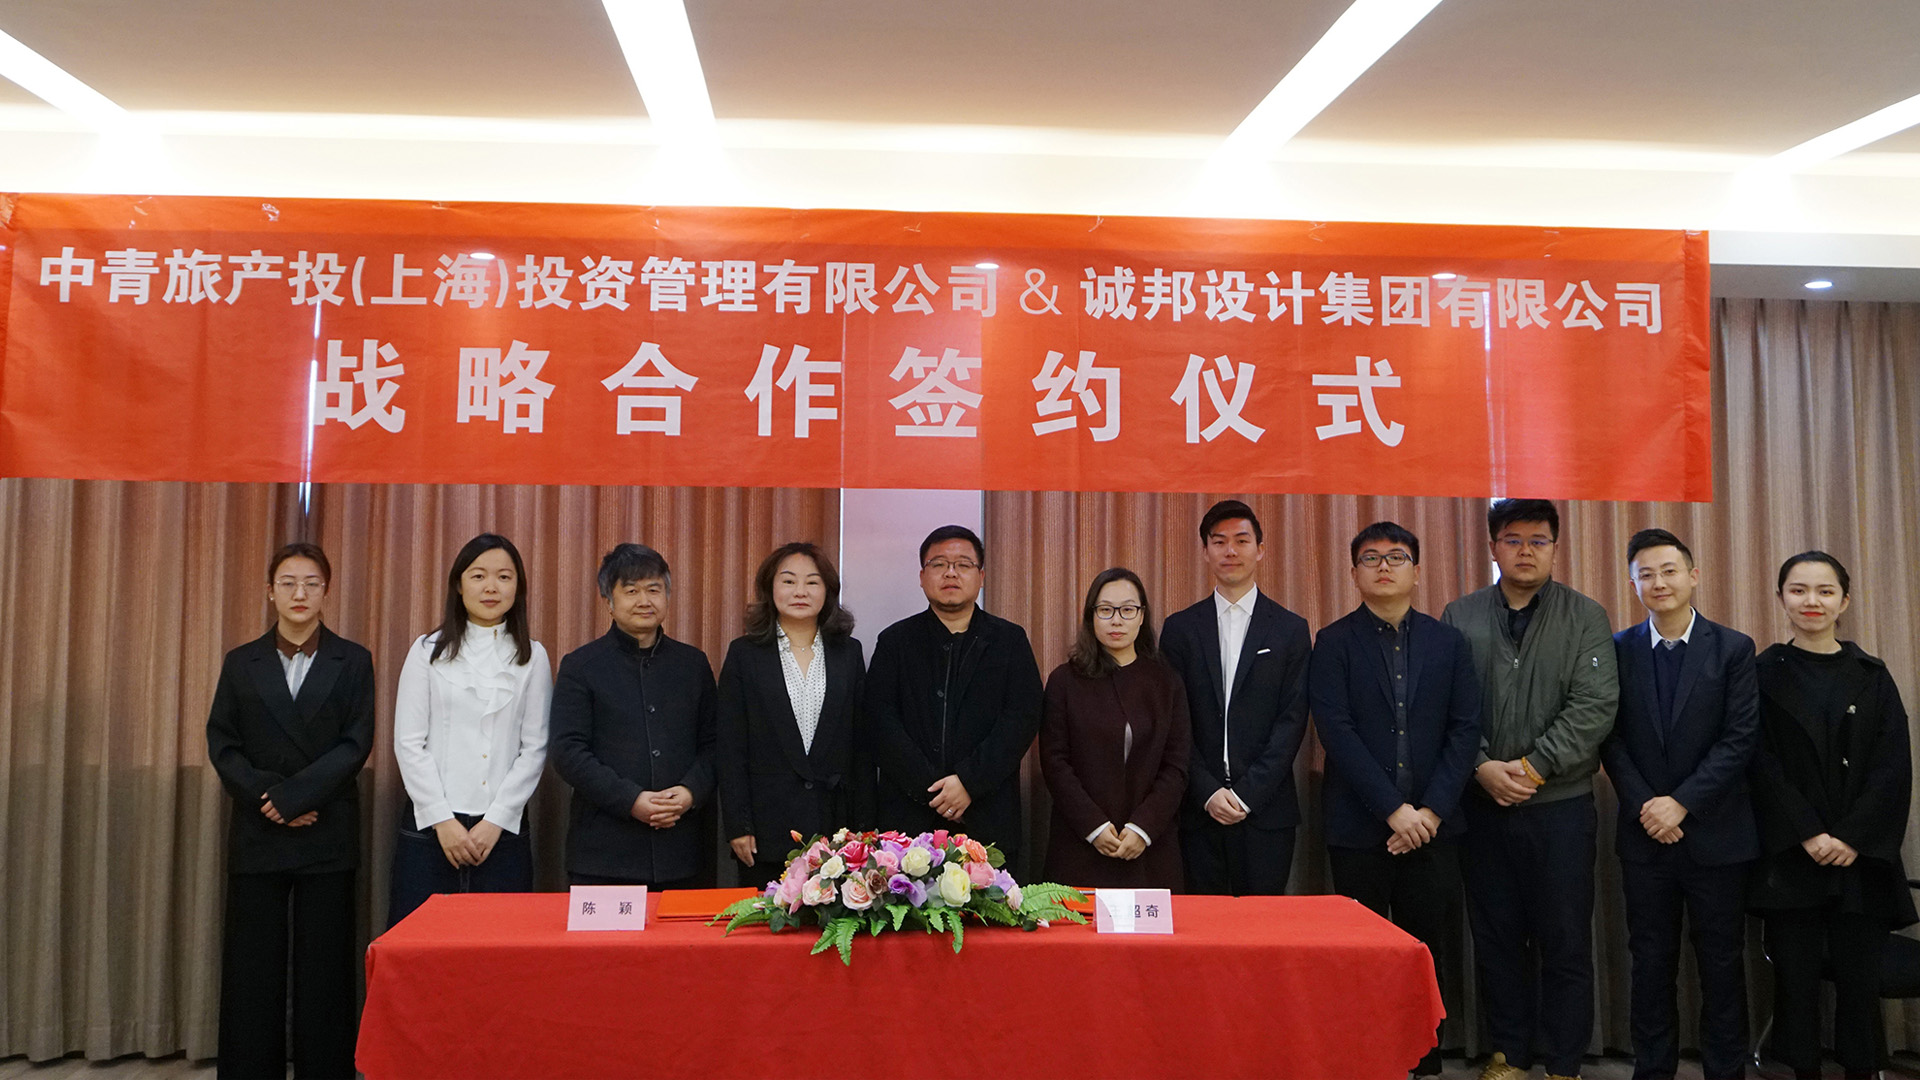 Chengbang Design Group signed a strategic cooperation agreement with China Youth Travel Investment (Shanghai) Investment Management Co., Ltd.